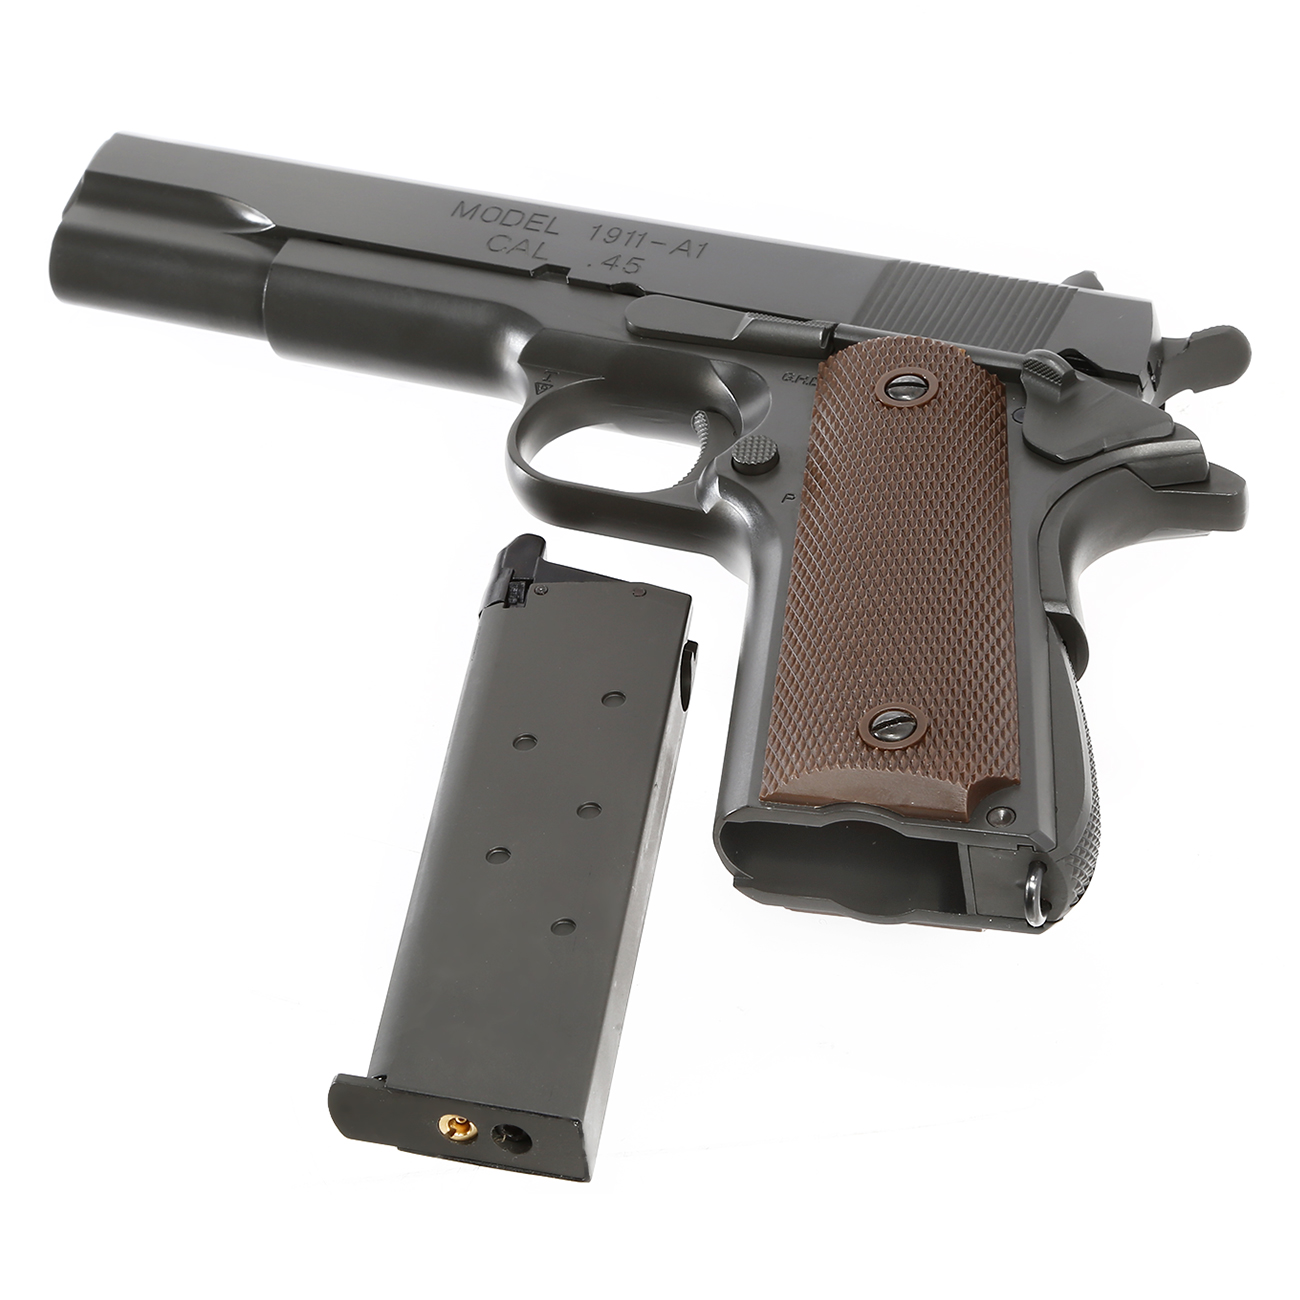 King Arms M1911-A1 Cal. 45 Vollmetall GBB 6mm BB Original-Grey 6